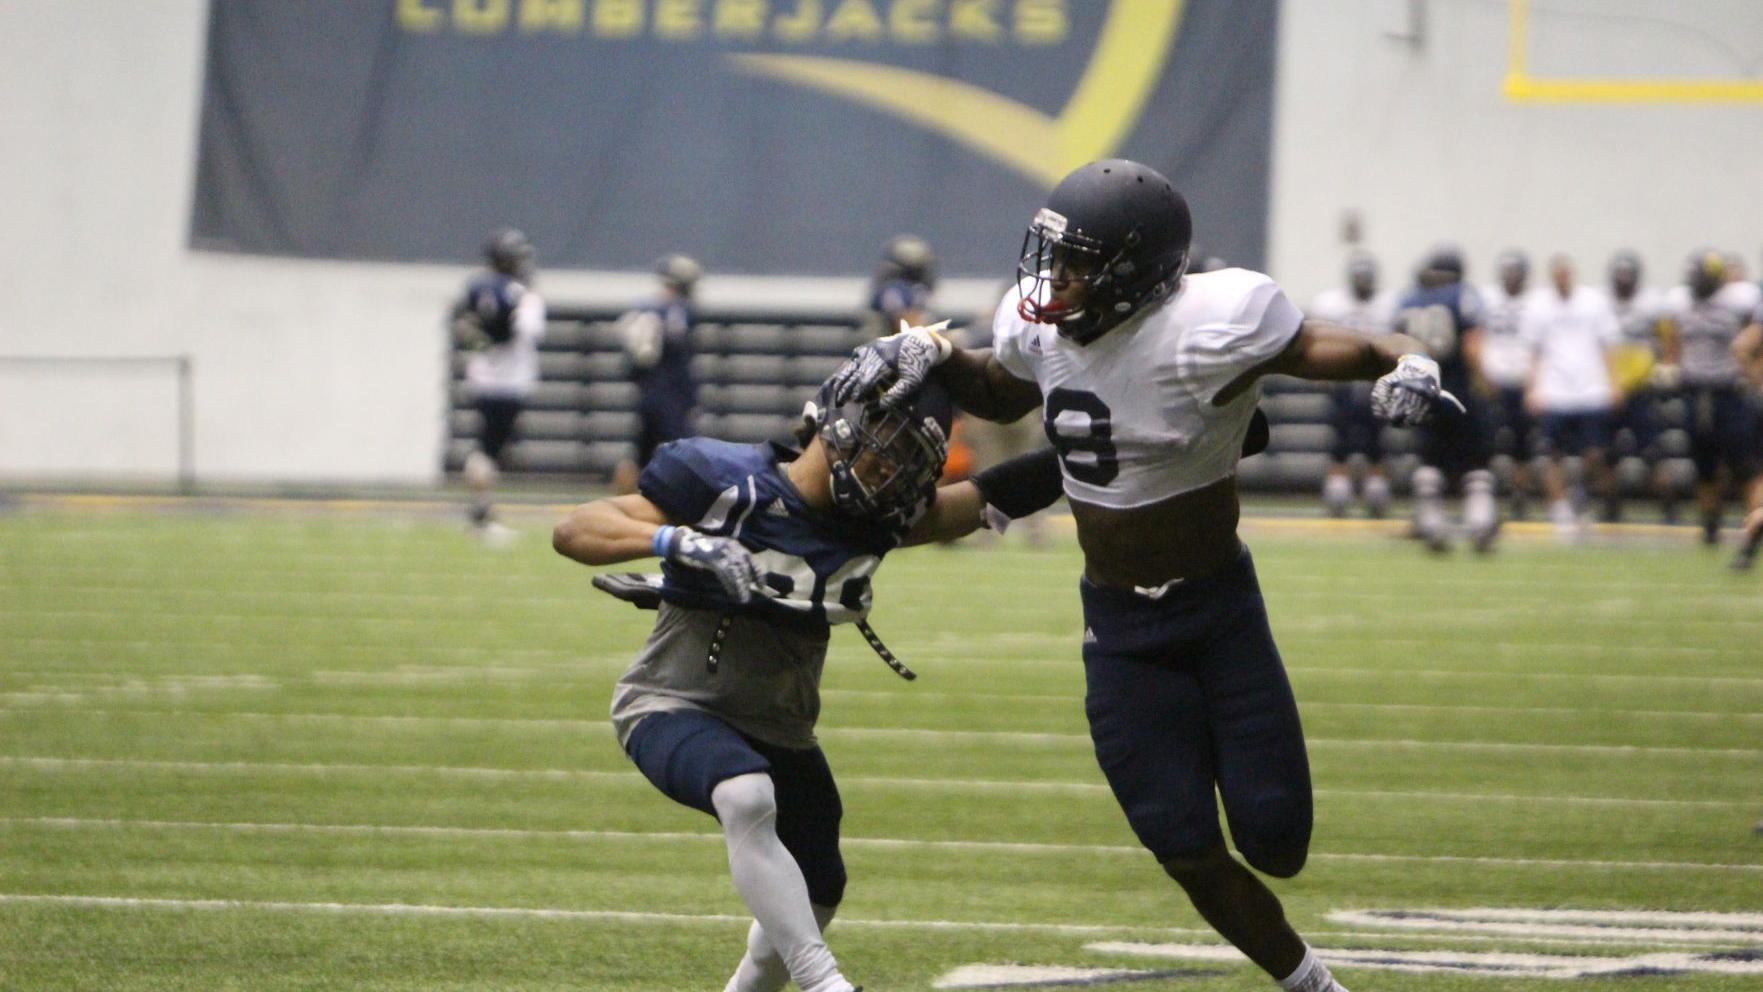 Familiar faces stand out early in Lumberjacks spring camp